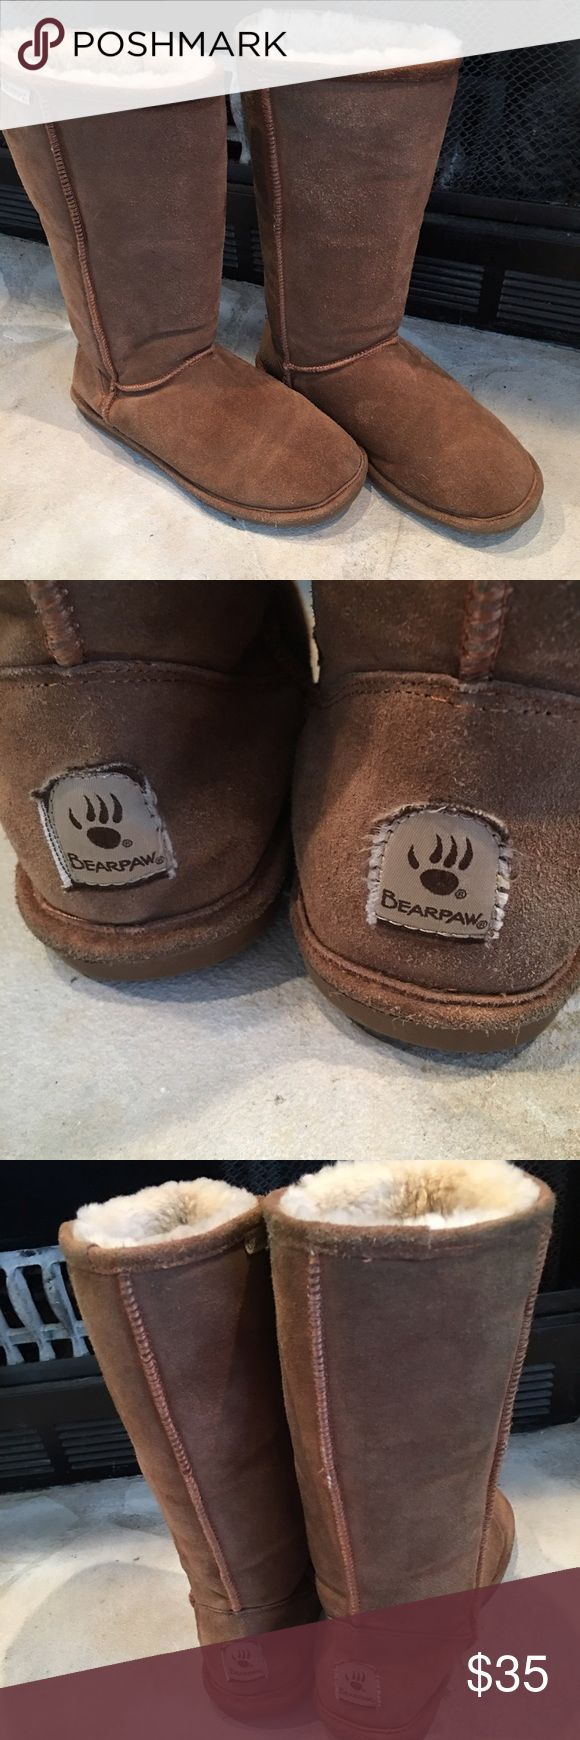 Bear claw boots Beautiful bear claw boots with sheep's skin wool  lining  in good condition only used it for few times Bear claw Shoes Winter & Rain Boots